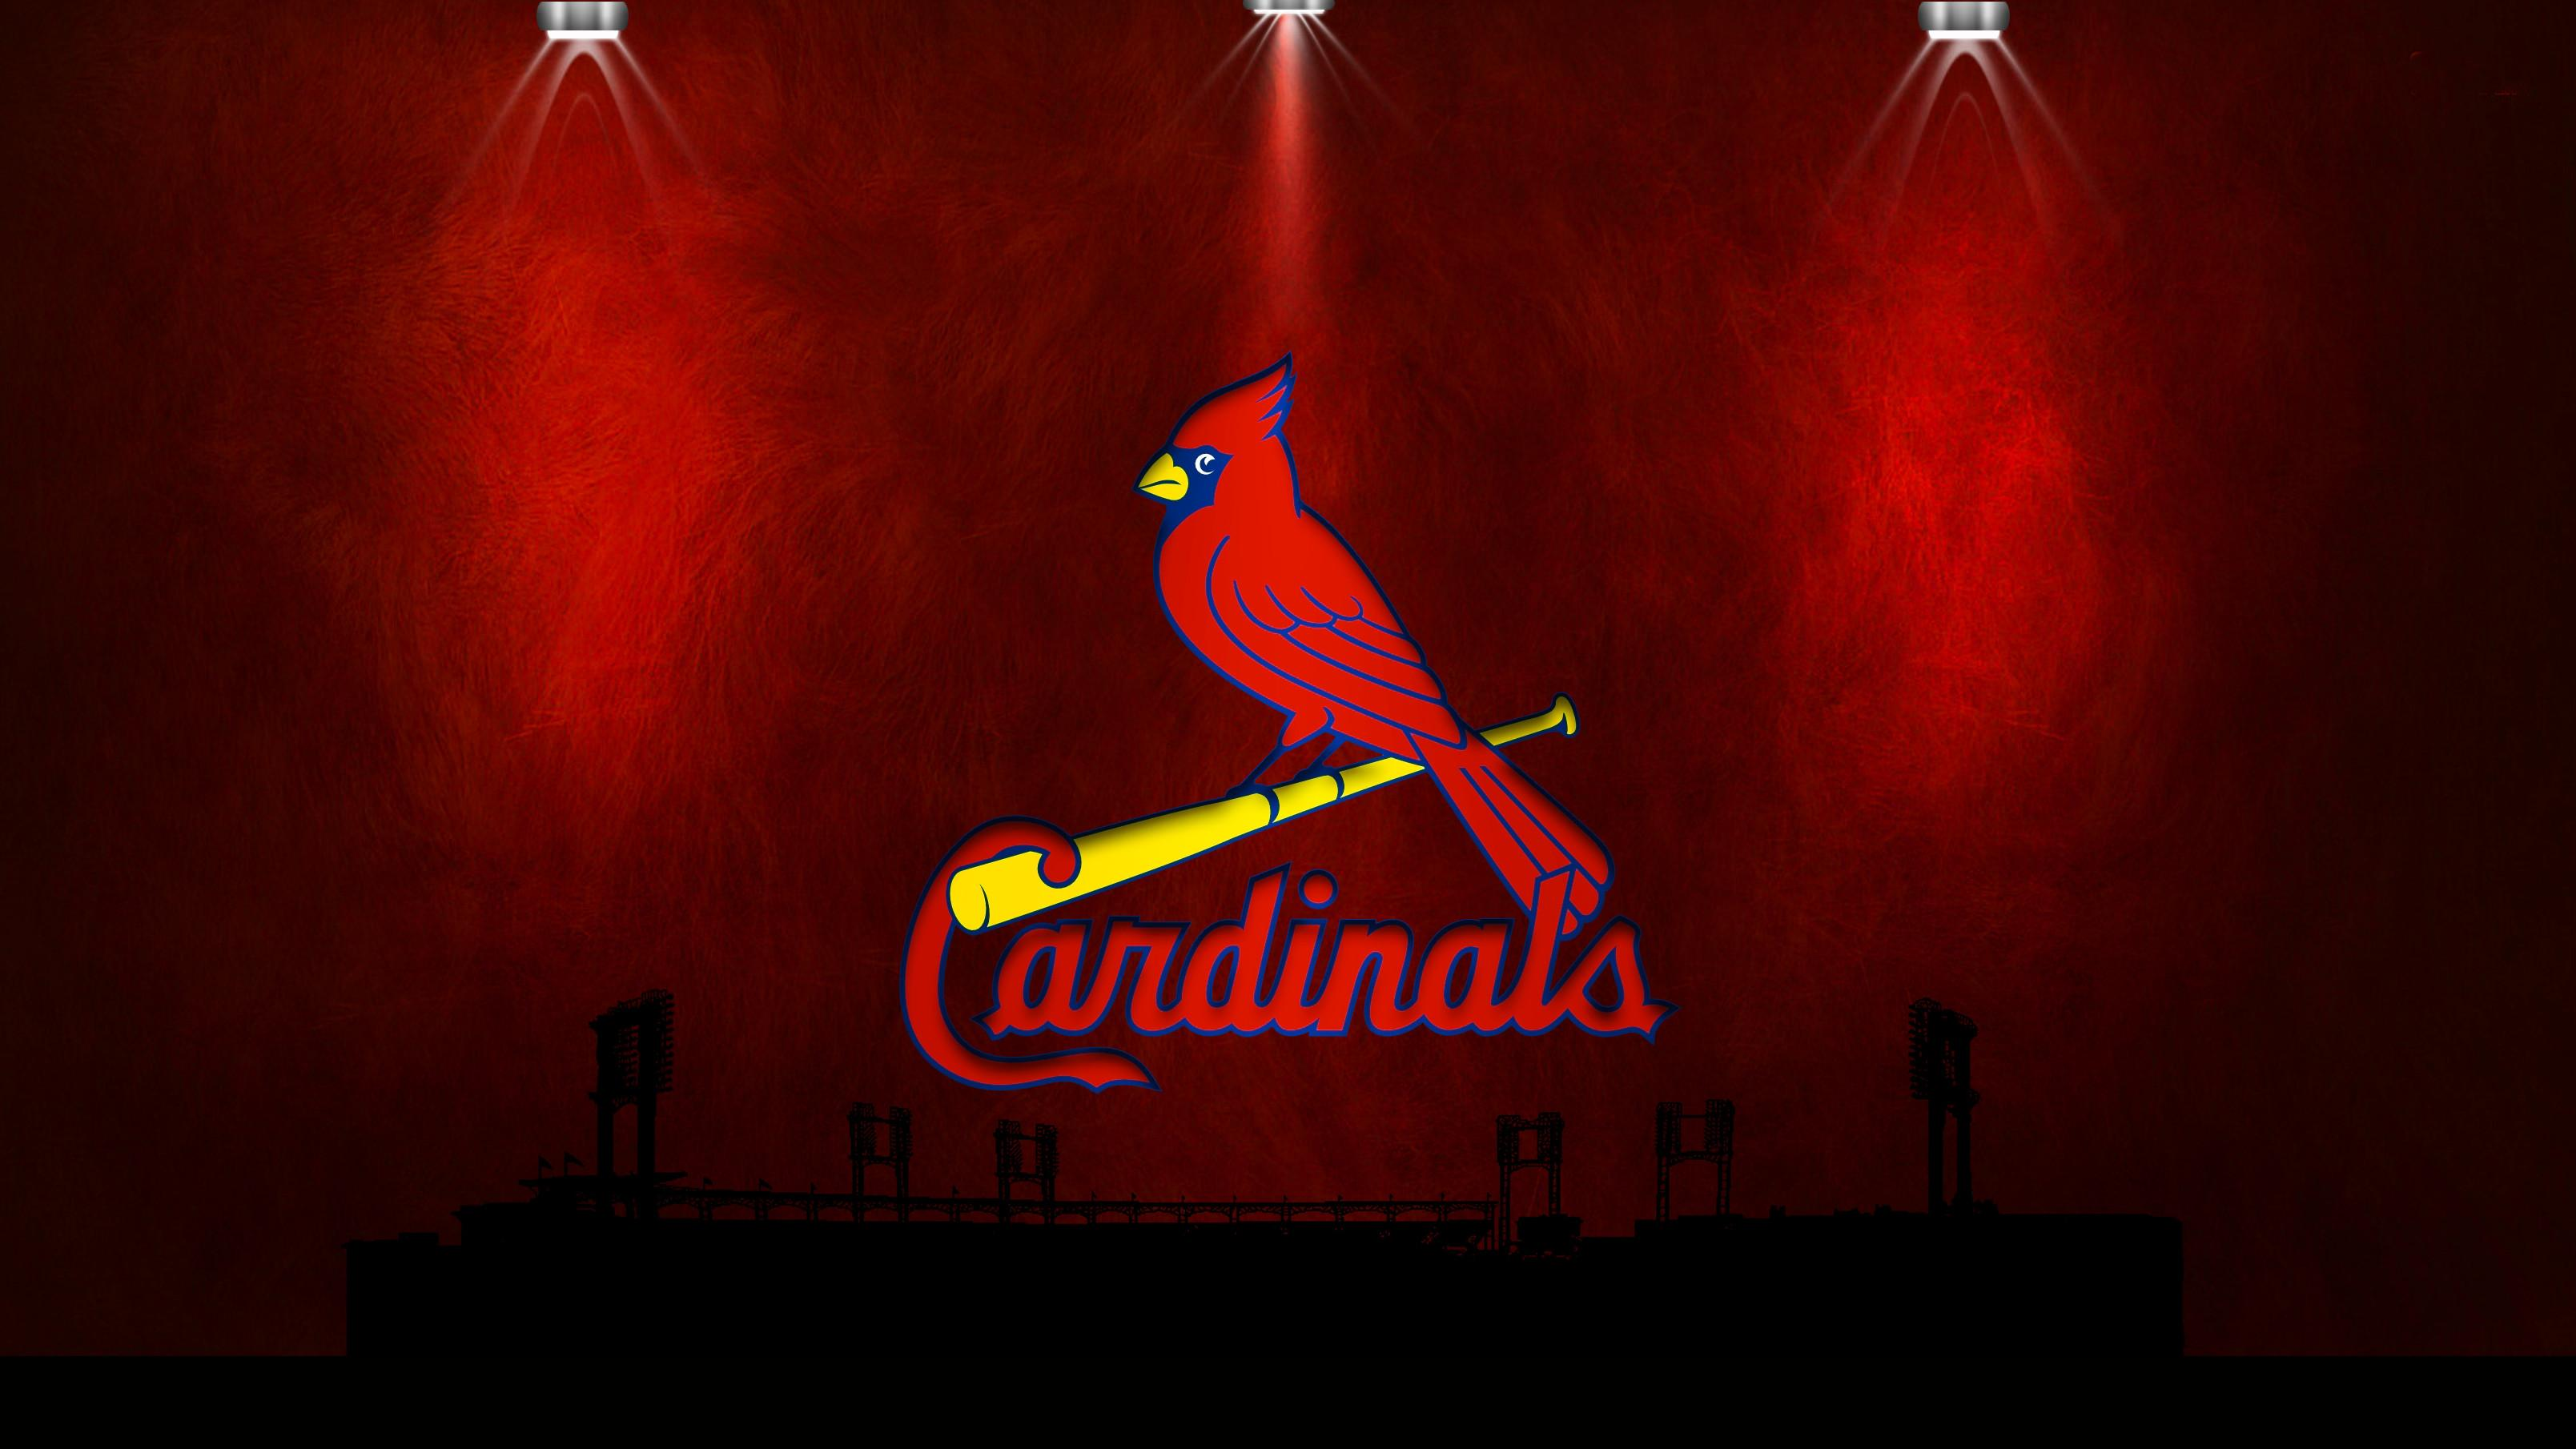 Download St Louis Cardinals Wallpaper Hd Backgrounds